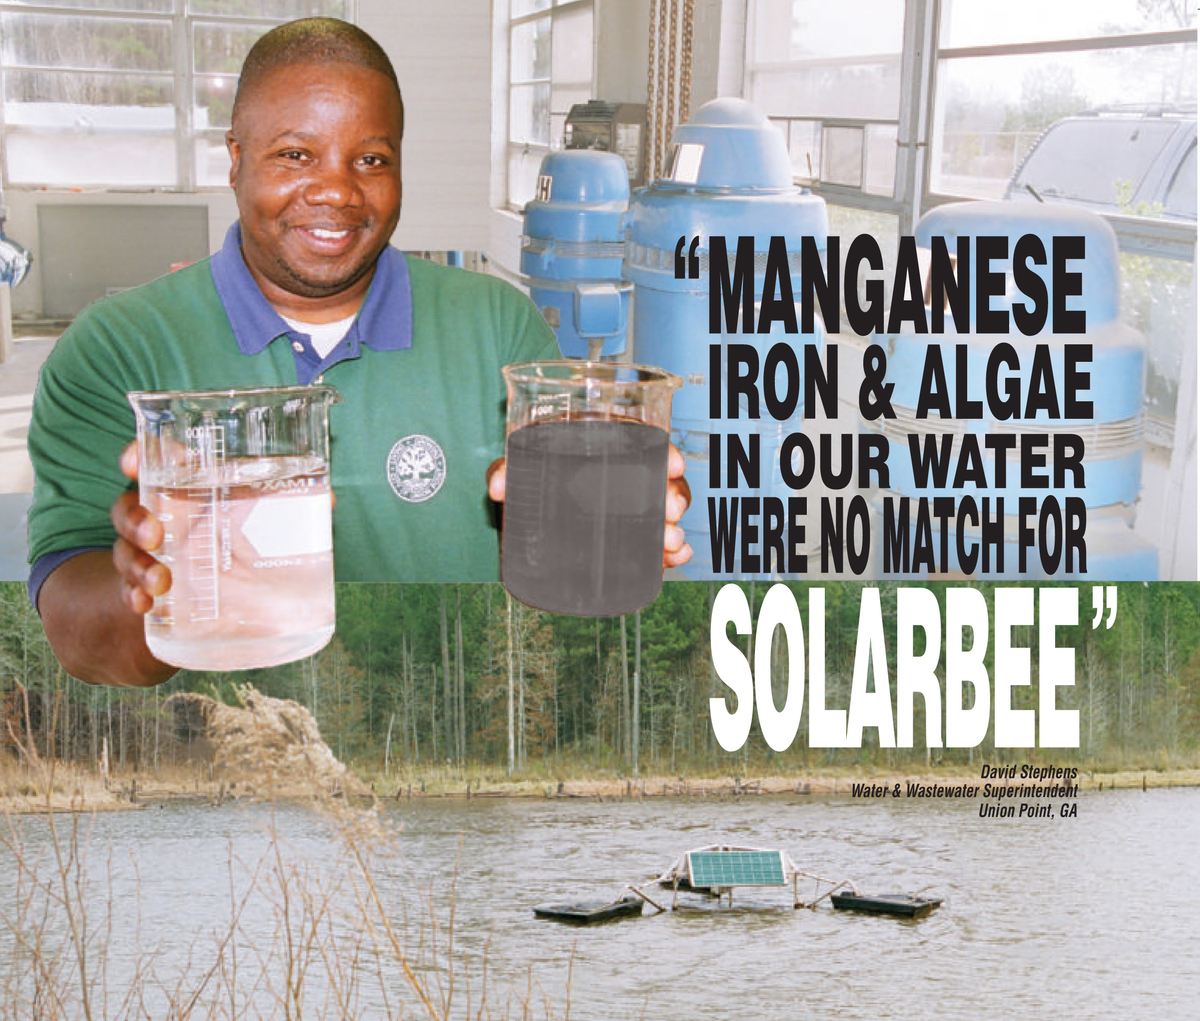 """Manganese, iron, and algae in our water were no match for SolarBee."""